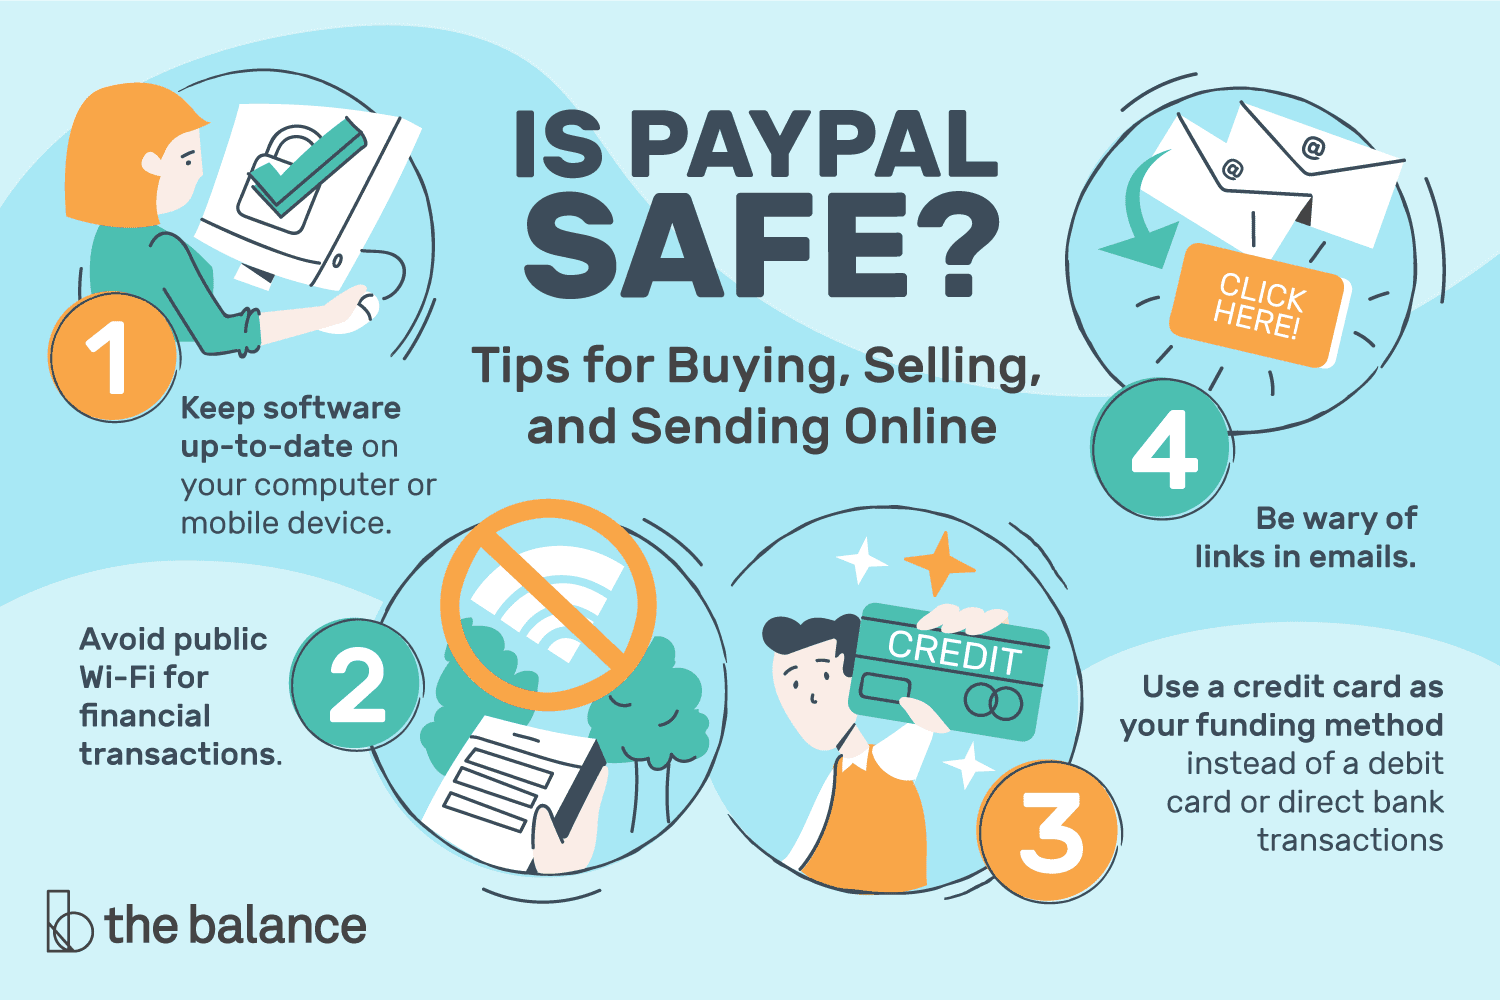 Is Paypal Safe Tips For Buying Selling And Sending Online